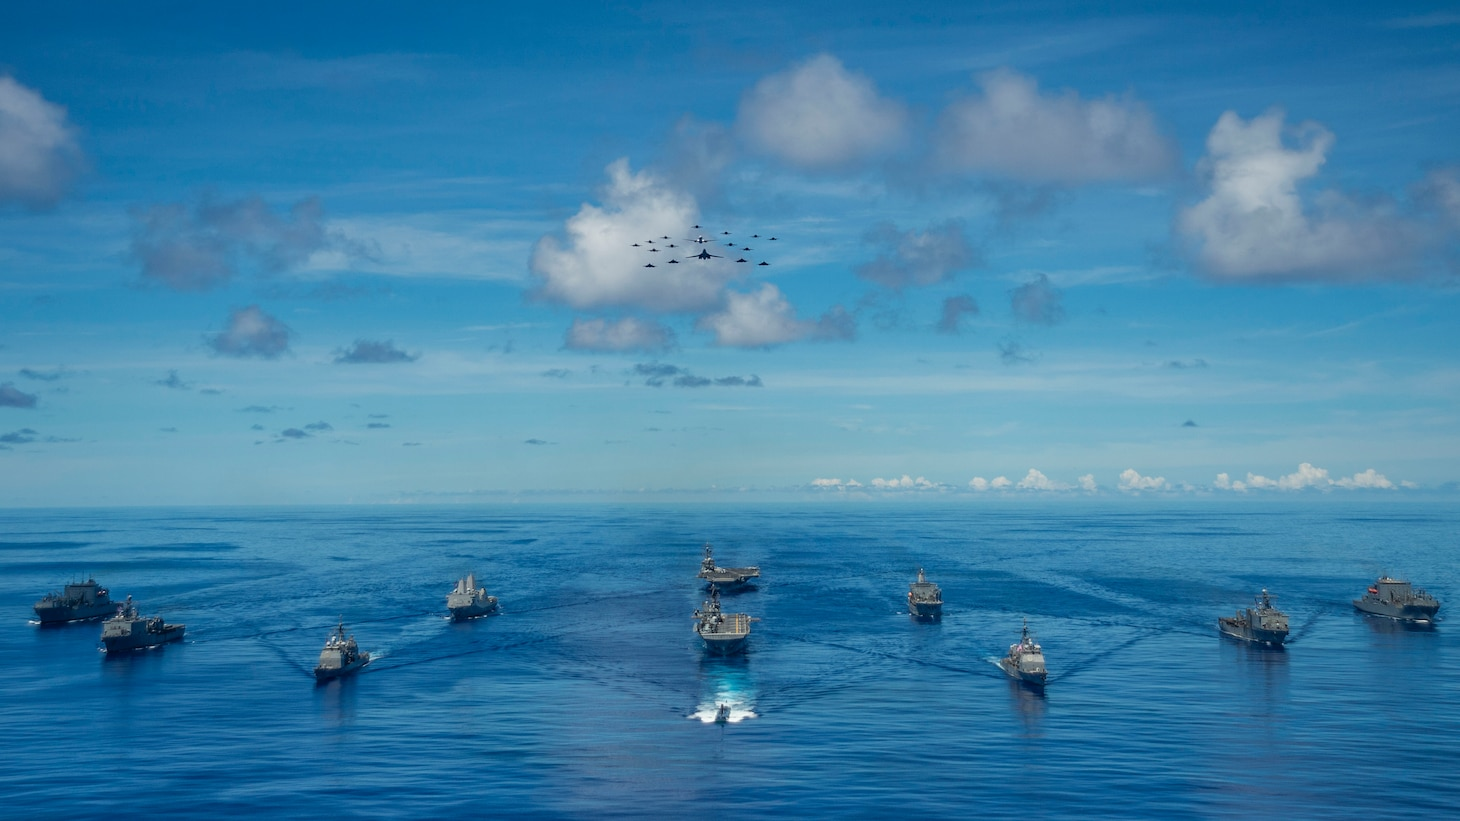 PHILIPPINE SEA (Sept. 25, 2020) From left, USNS Charles Drew (T-AKE 10), USS Comstock (LSD 45), USS Shiloh (CG 67), USS New Orleans (LPD 18), USS Chicago (SSN 721), USS America (LHA 6), USS Ronald Reagan (CVN 76), USNS John Ericsson (T-AO 194), USS Antietam (CG 54), USS Germantown (LSD 42), and USNS Sacagawea (T-AKE 2) steam in formation in support of Valiant Shield 2020. Valiant Shield is a U.S. only, biennial field training exercise (FTX) with a focus on integration of joint training in a blue-water environment among U.S. forces. This training enables real-world proficiency in sustaining joint forces through detecting, locating, tracking and engaging units at sea, in the air, on land and in cyberspace in response to a range of mission areas. (U.S. Navy photo by Mass Communication Specialist 2nd Class Codie Soule)